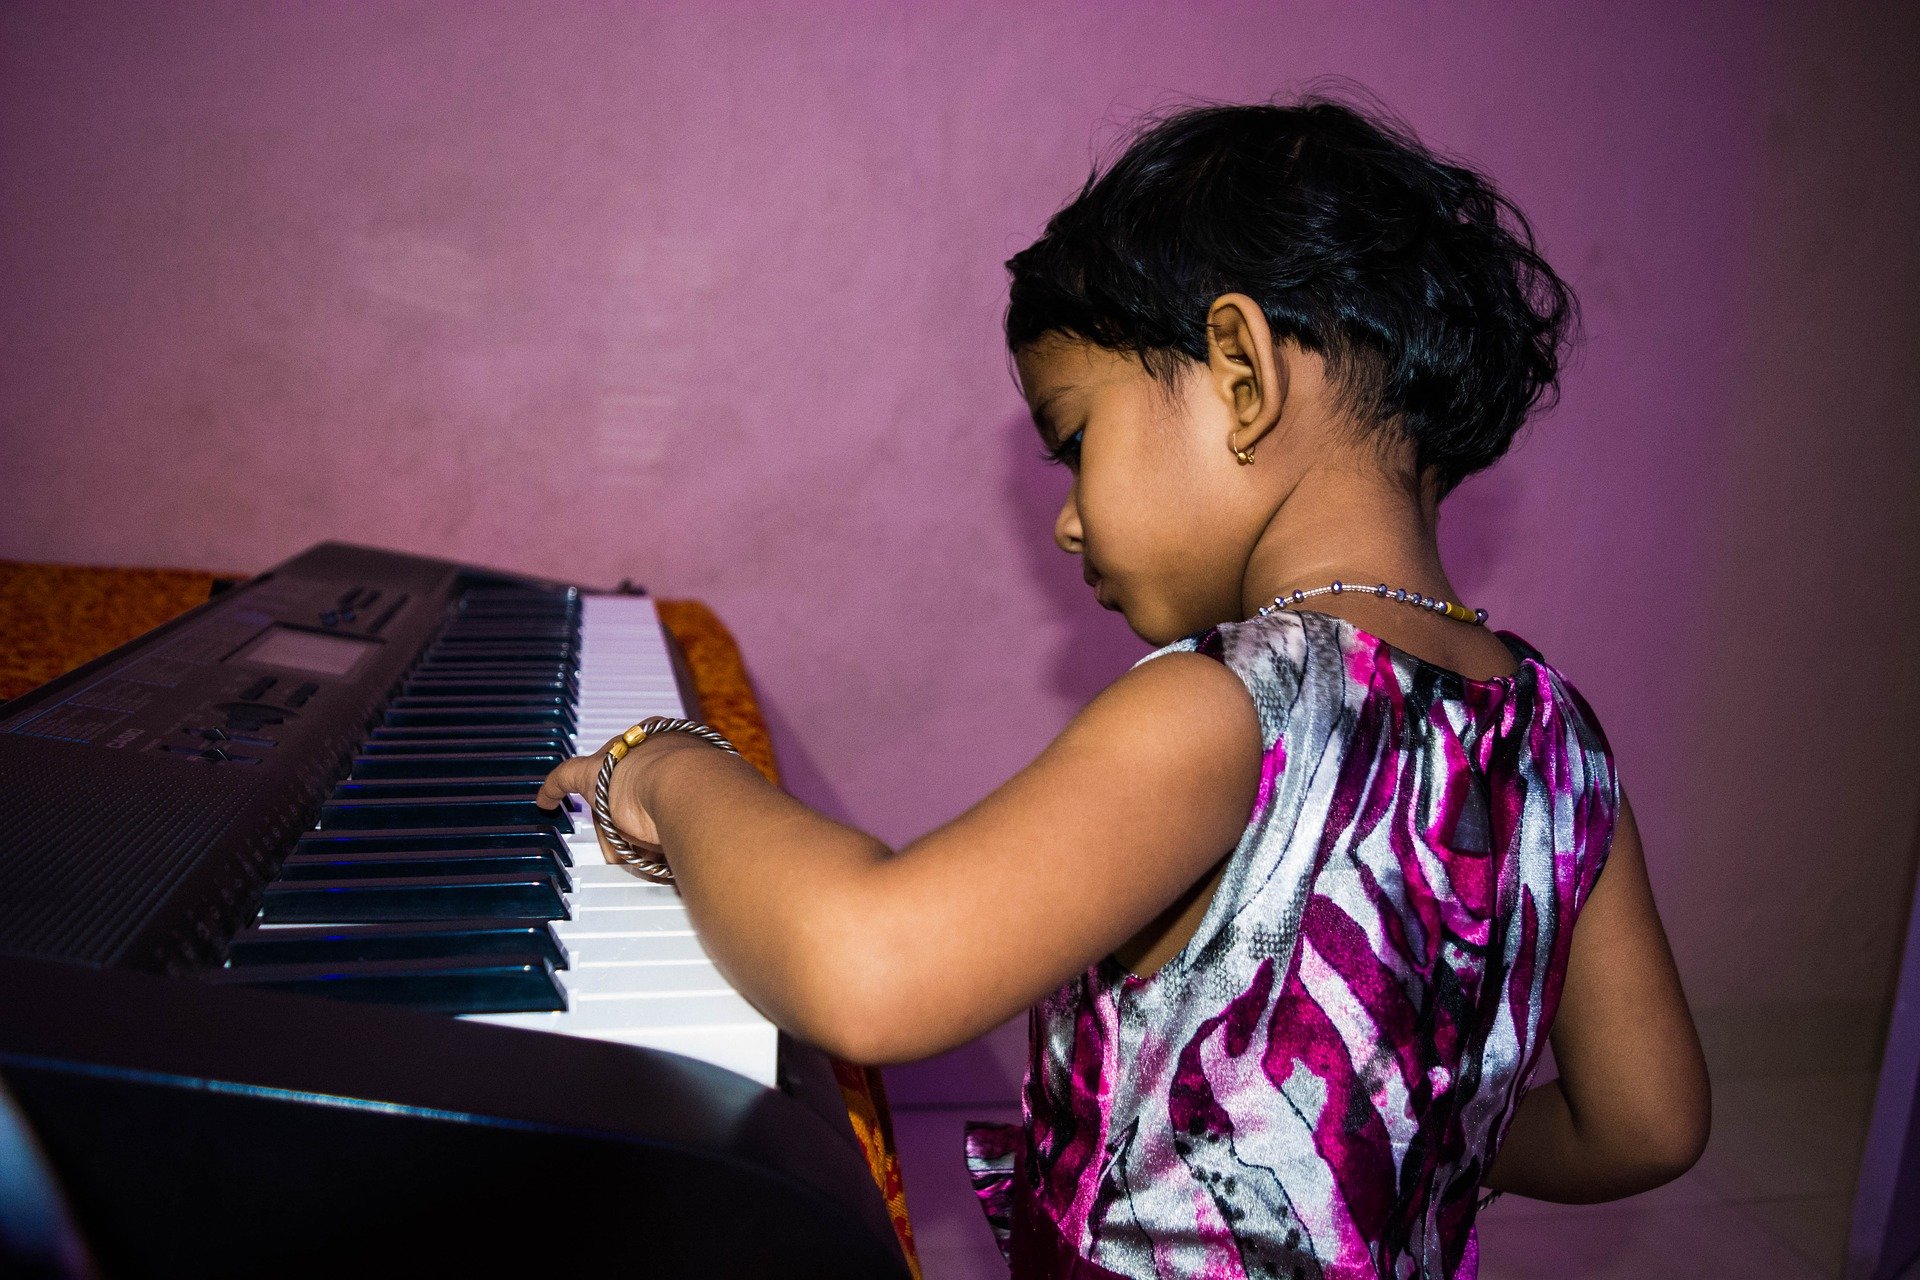 cute-girl-playing-piano-1628763_1920 copy.jpg